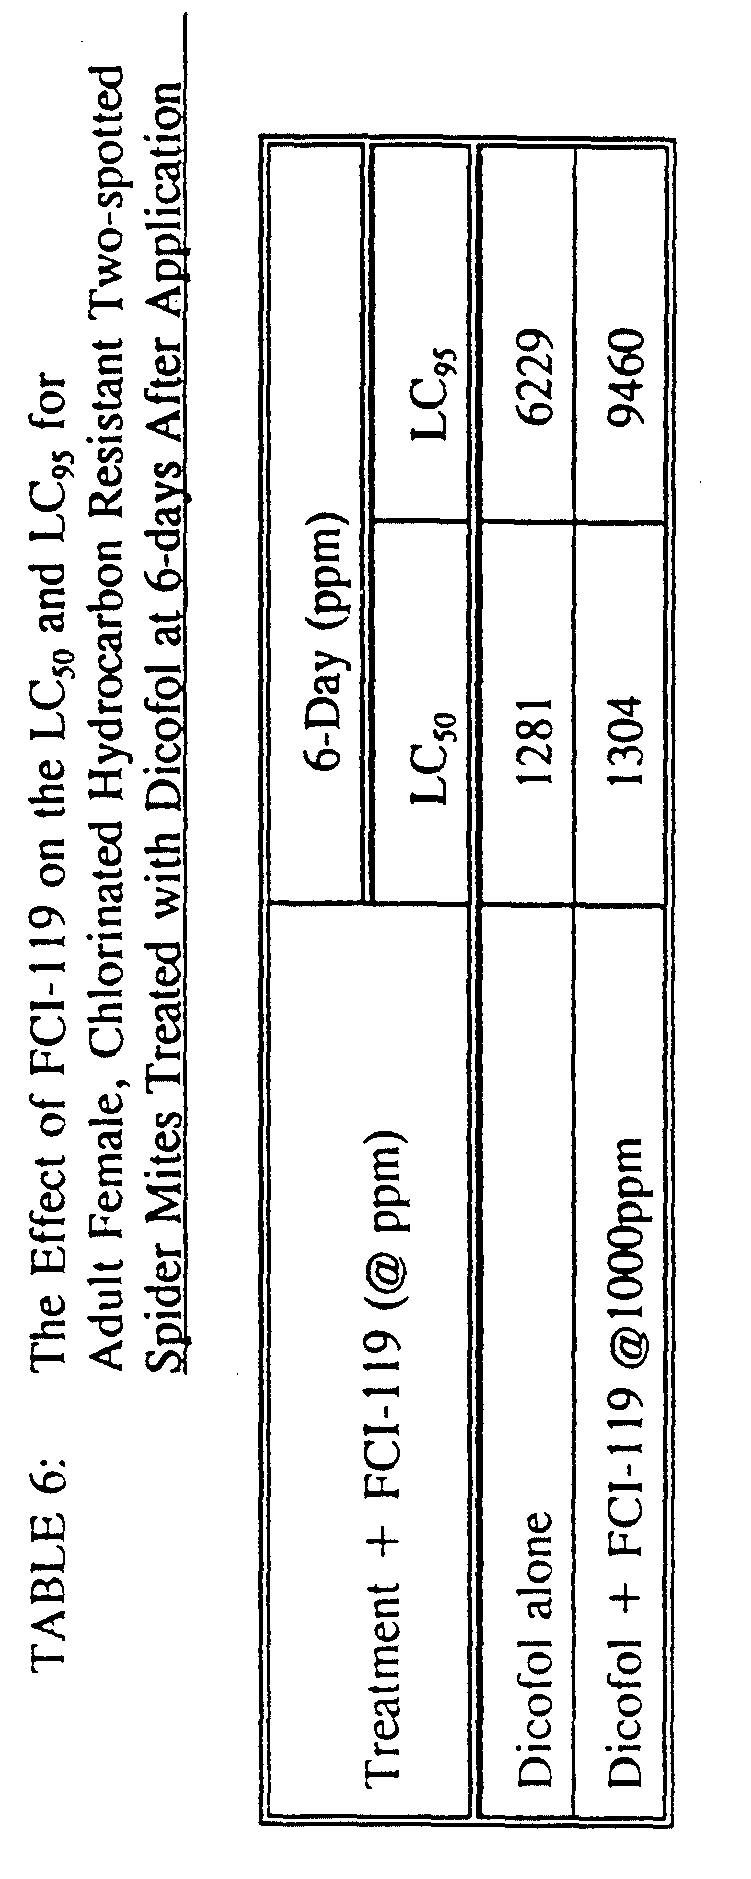 WO1994024862A1 - Miticidal composition and method for